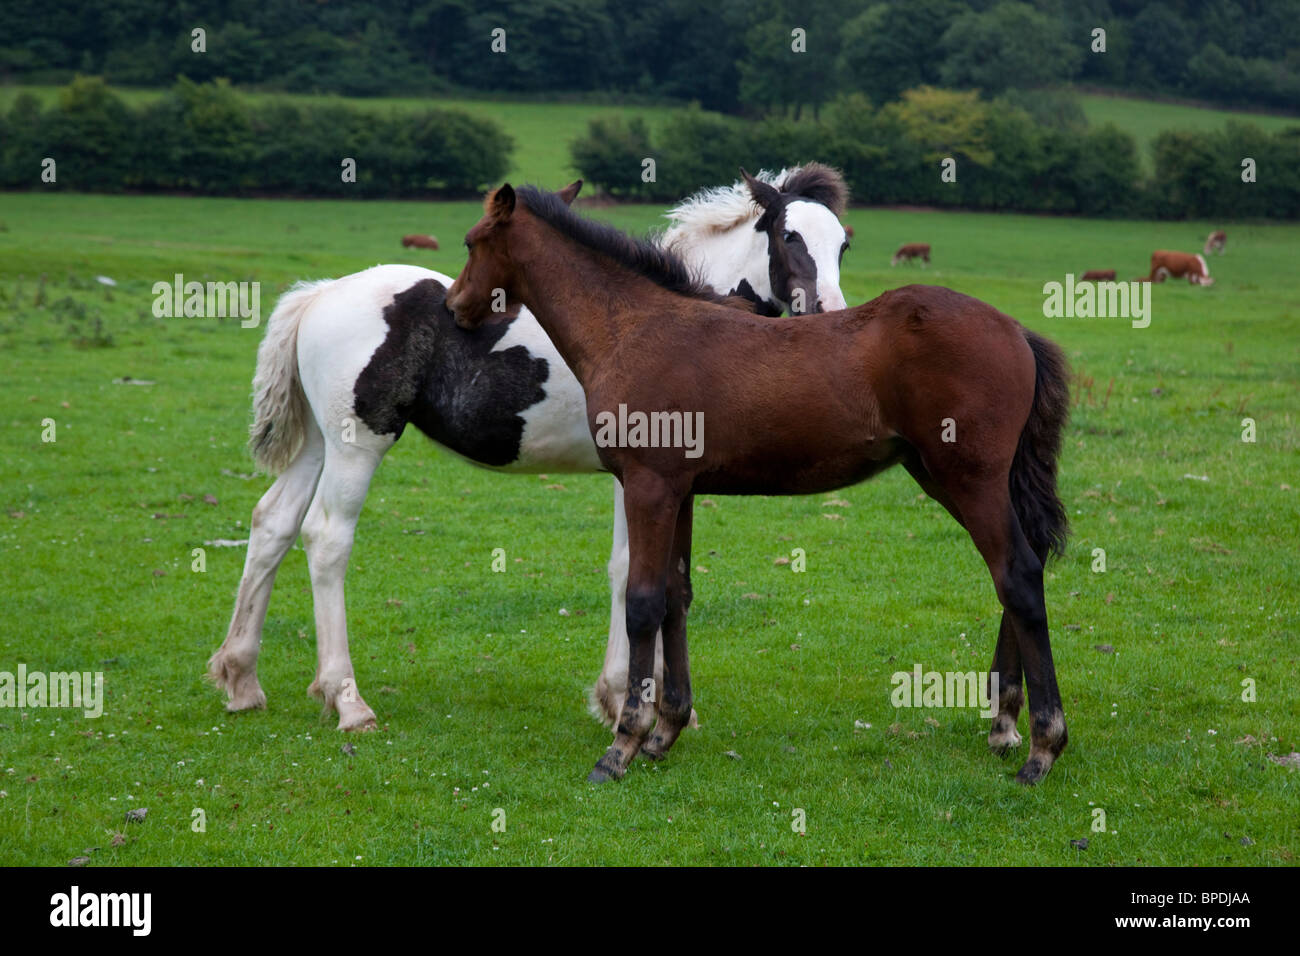 Foals mutual grooming; Wales taken from public footpath - Stock Image